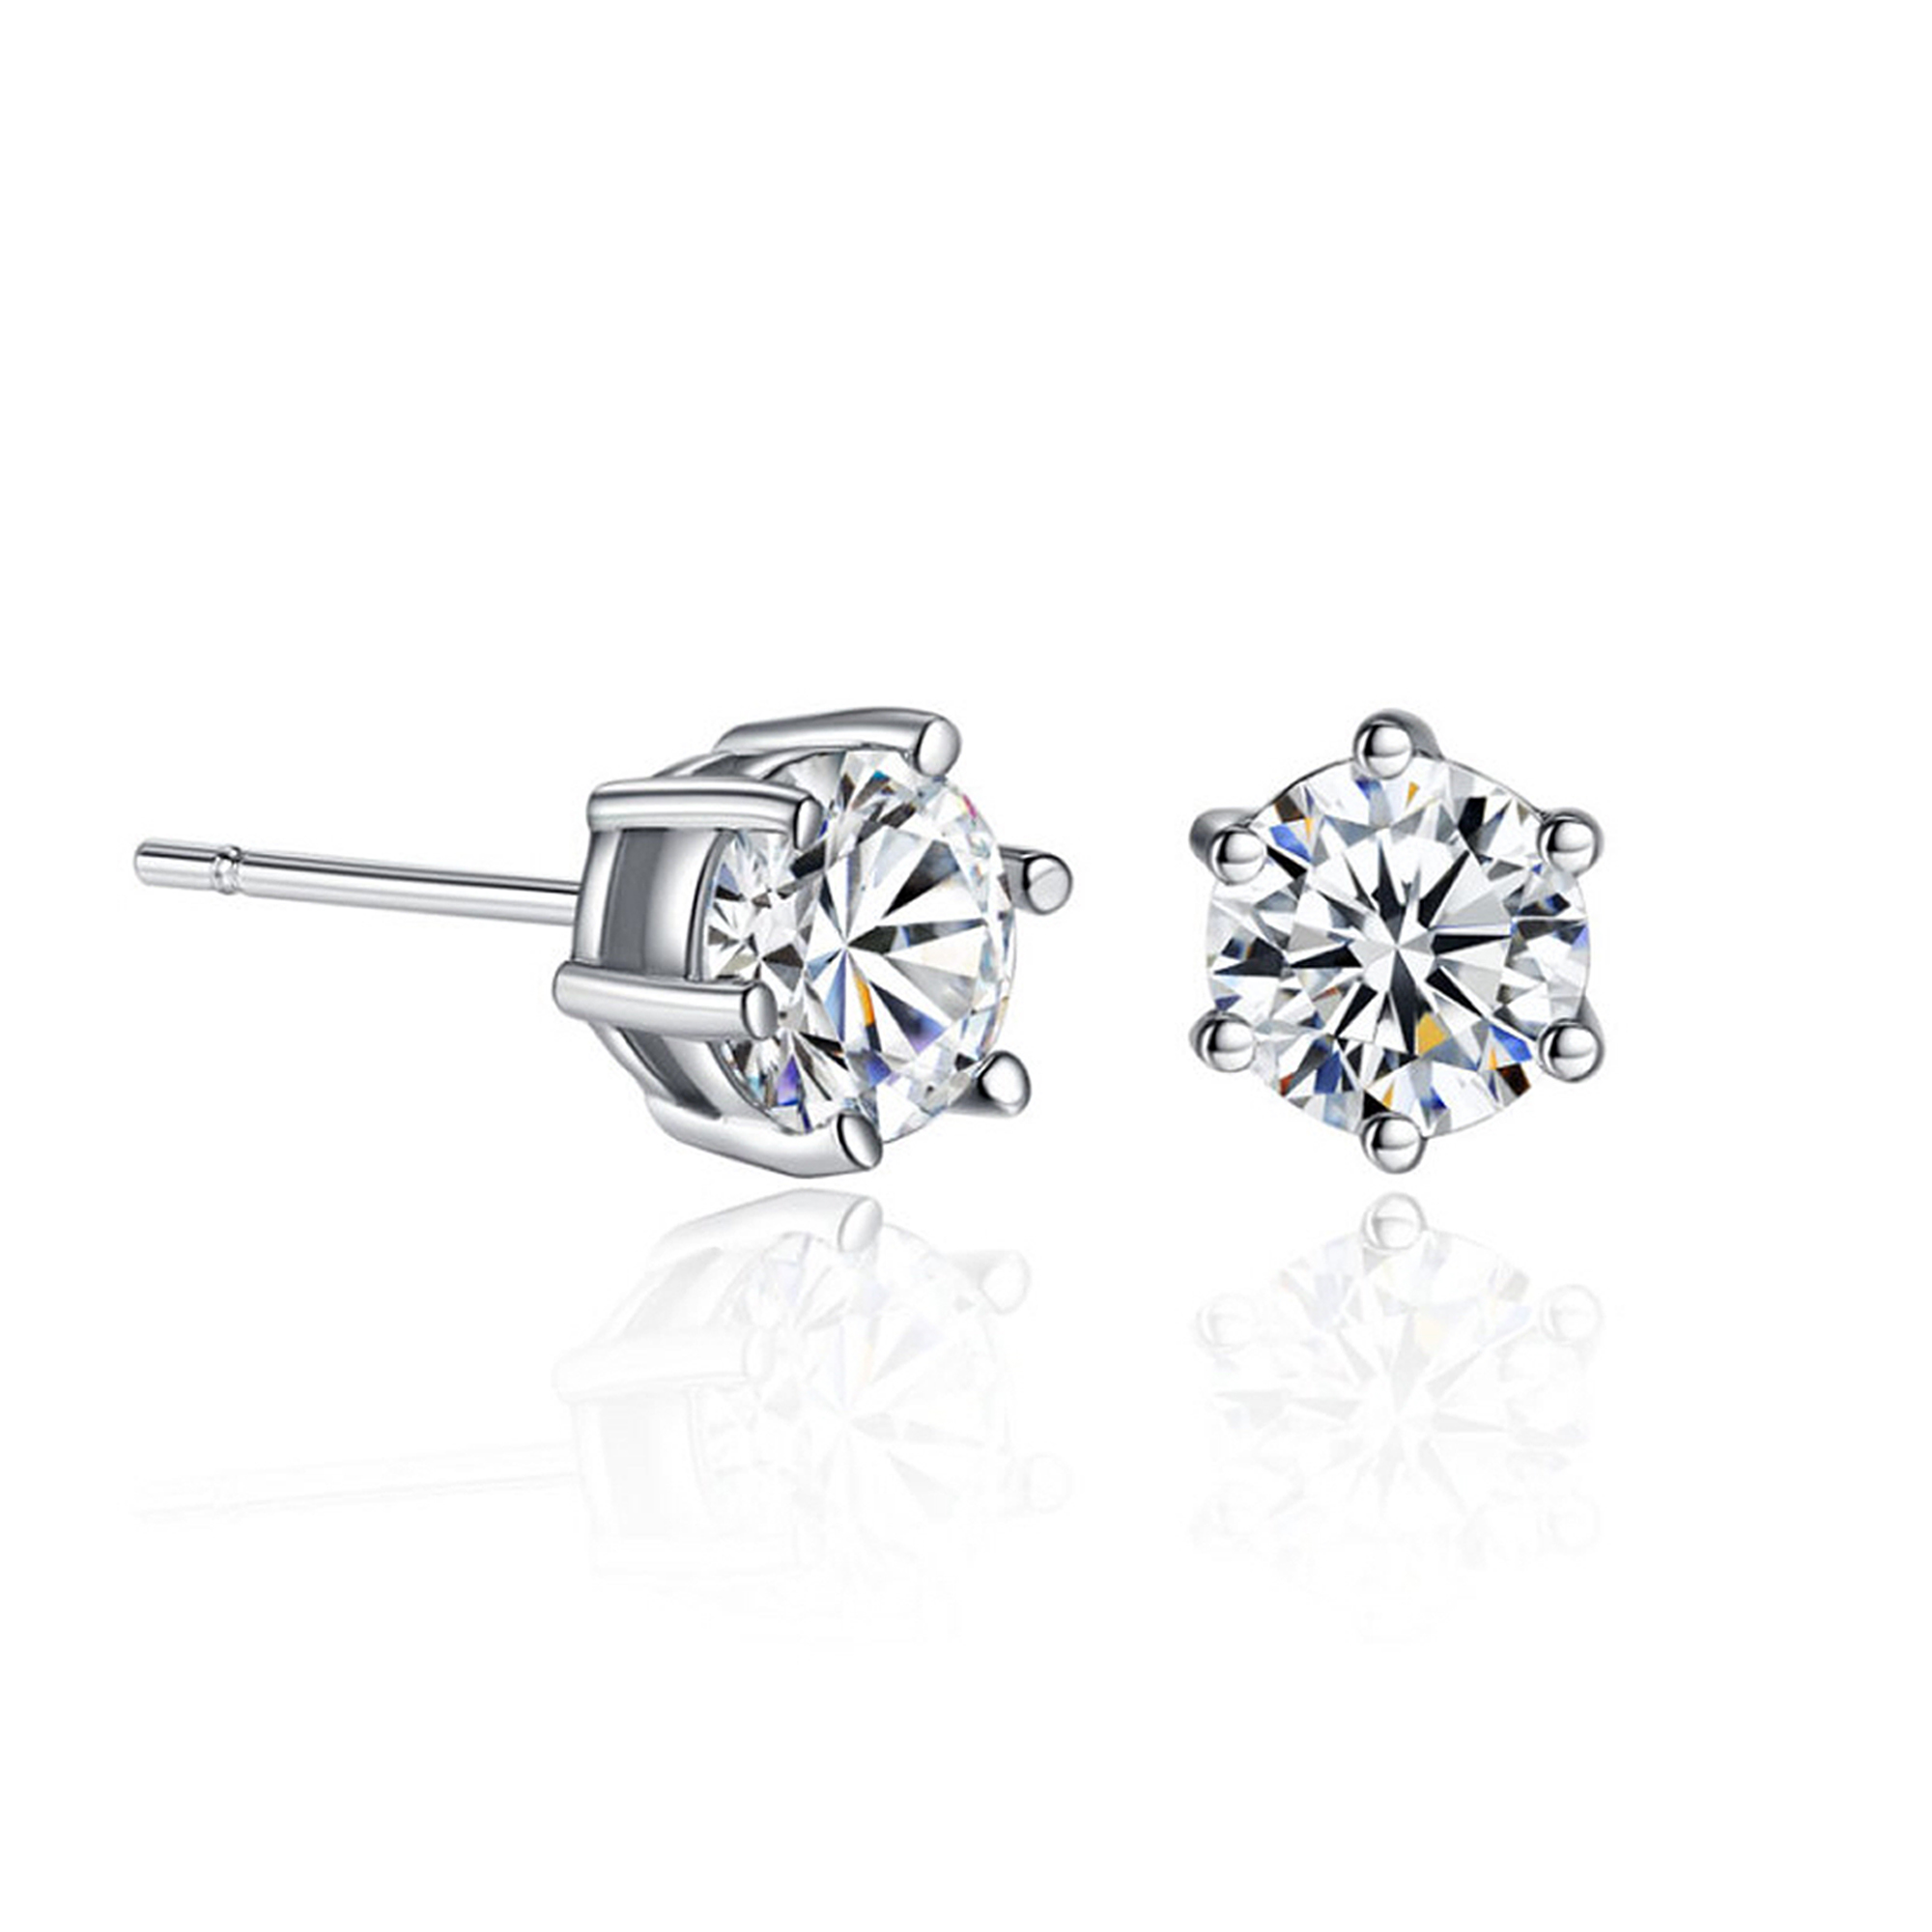 product blue bt stud studs earrings kiki mcdonough topaz jewellery grace sloane